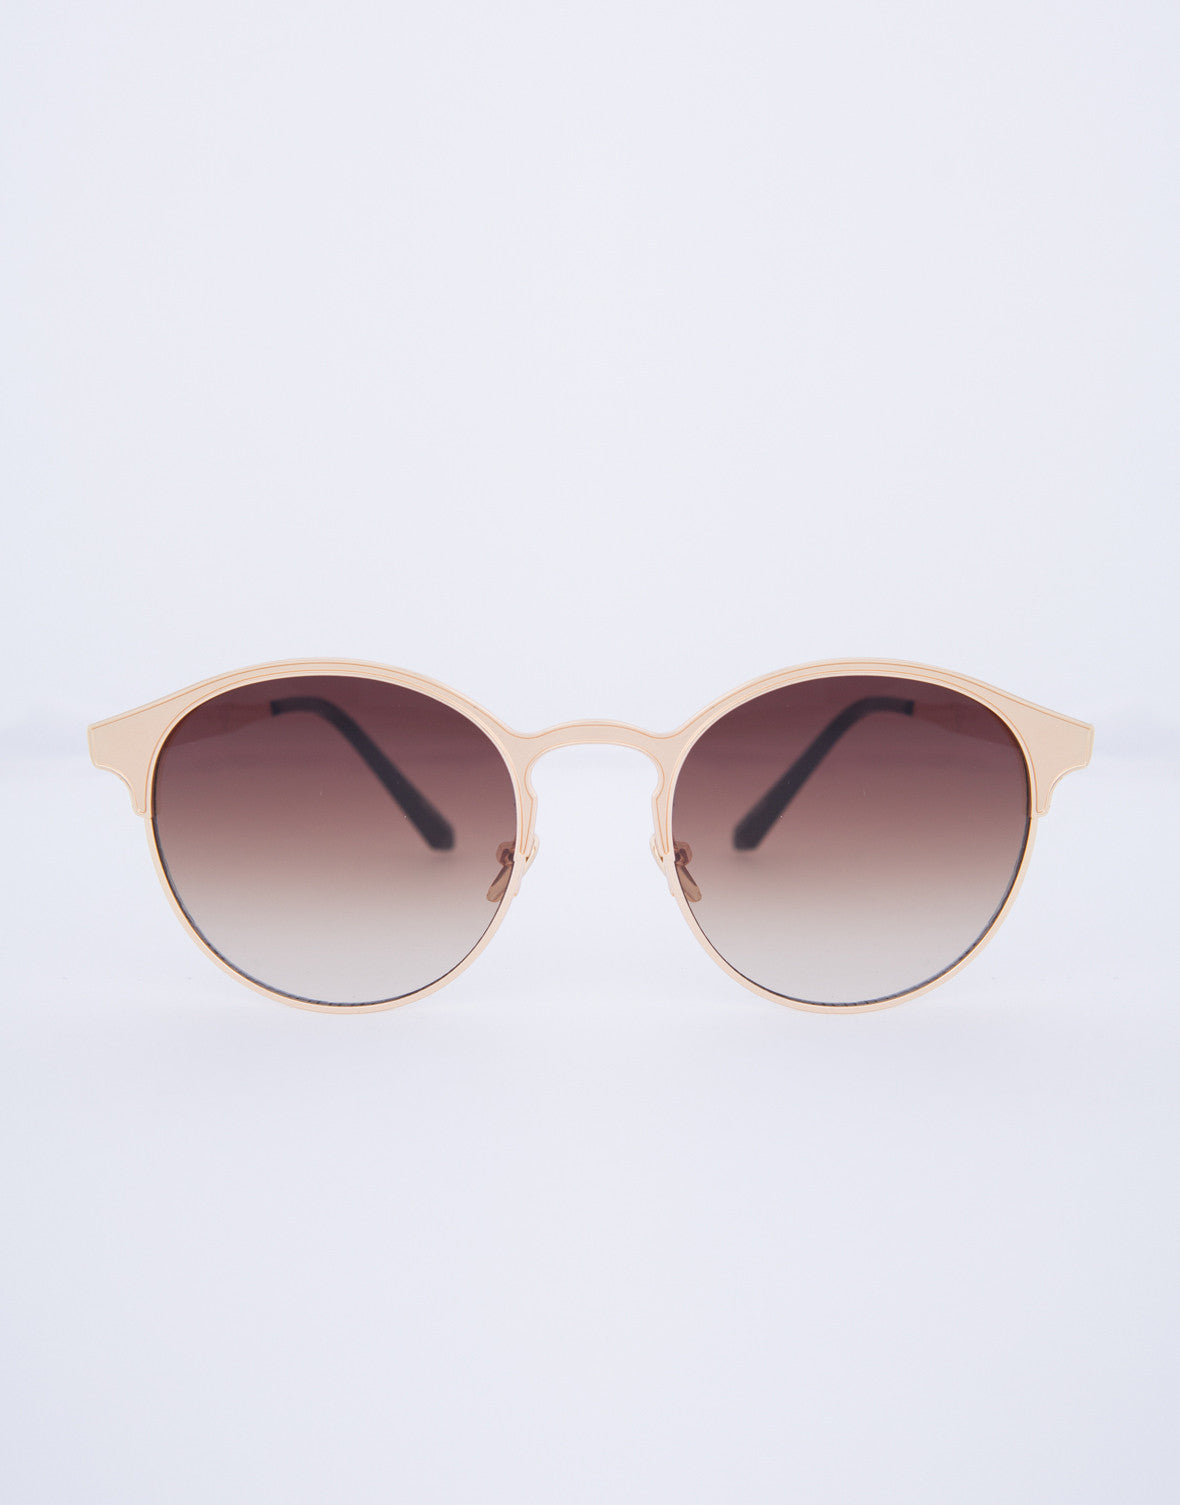 Round About Sunnies